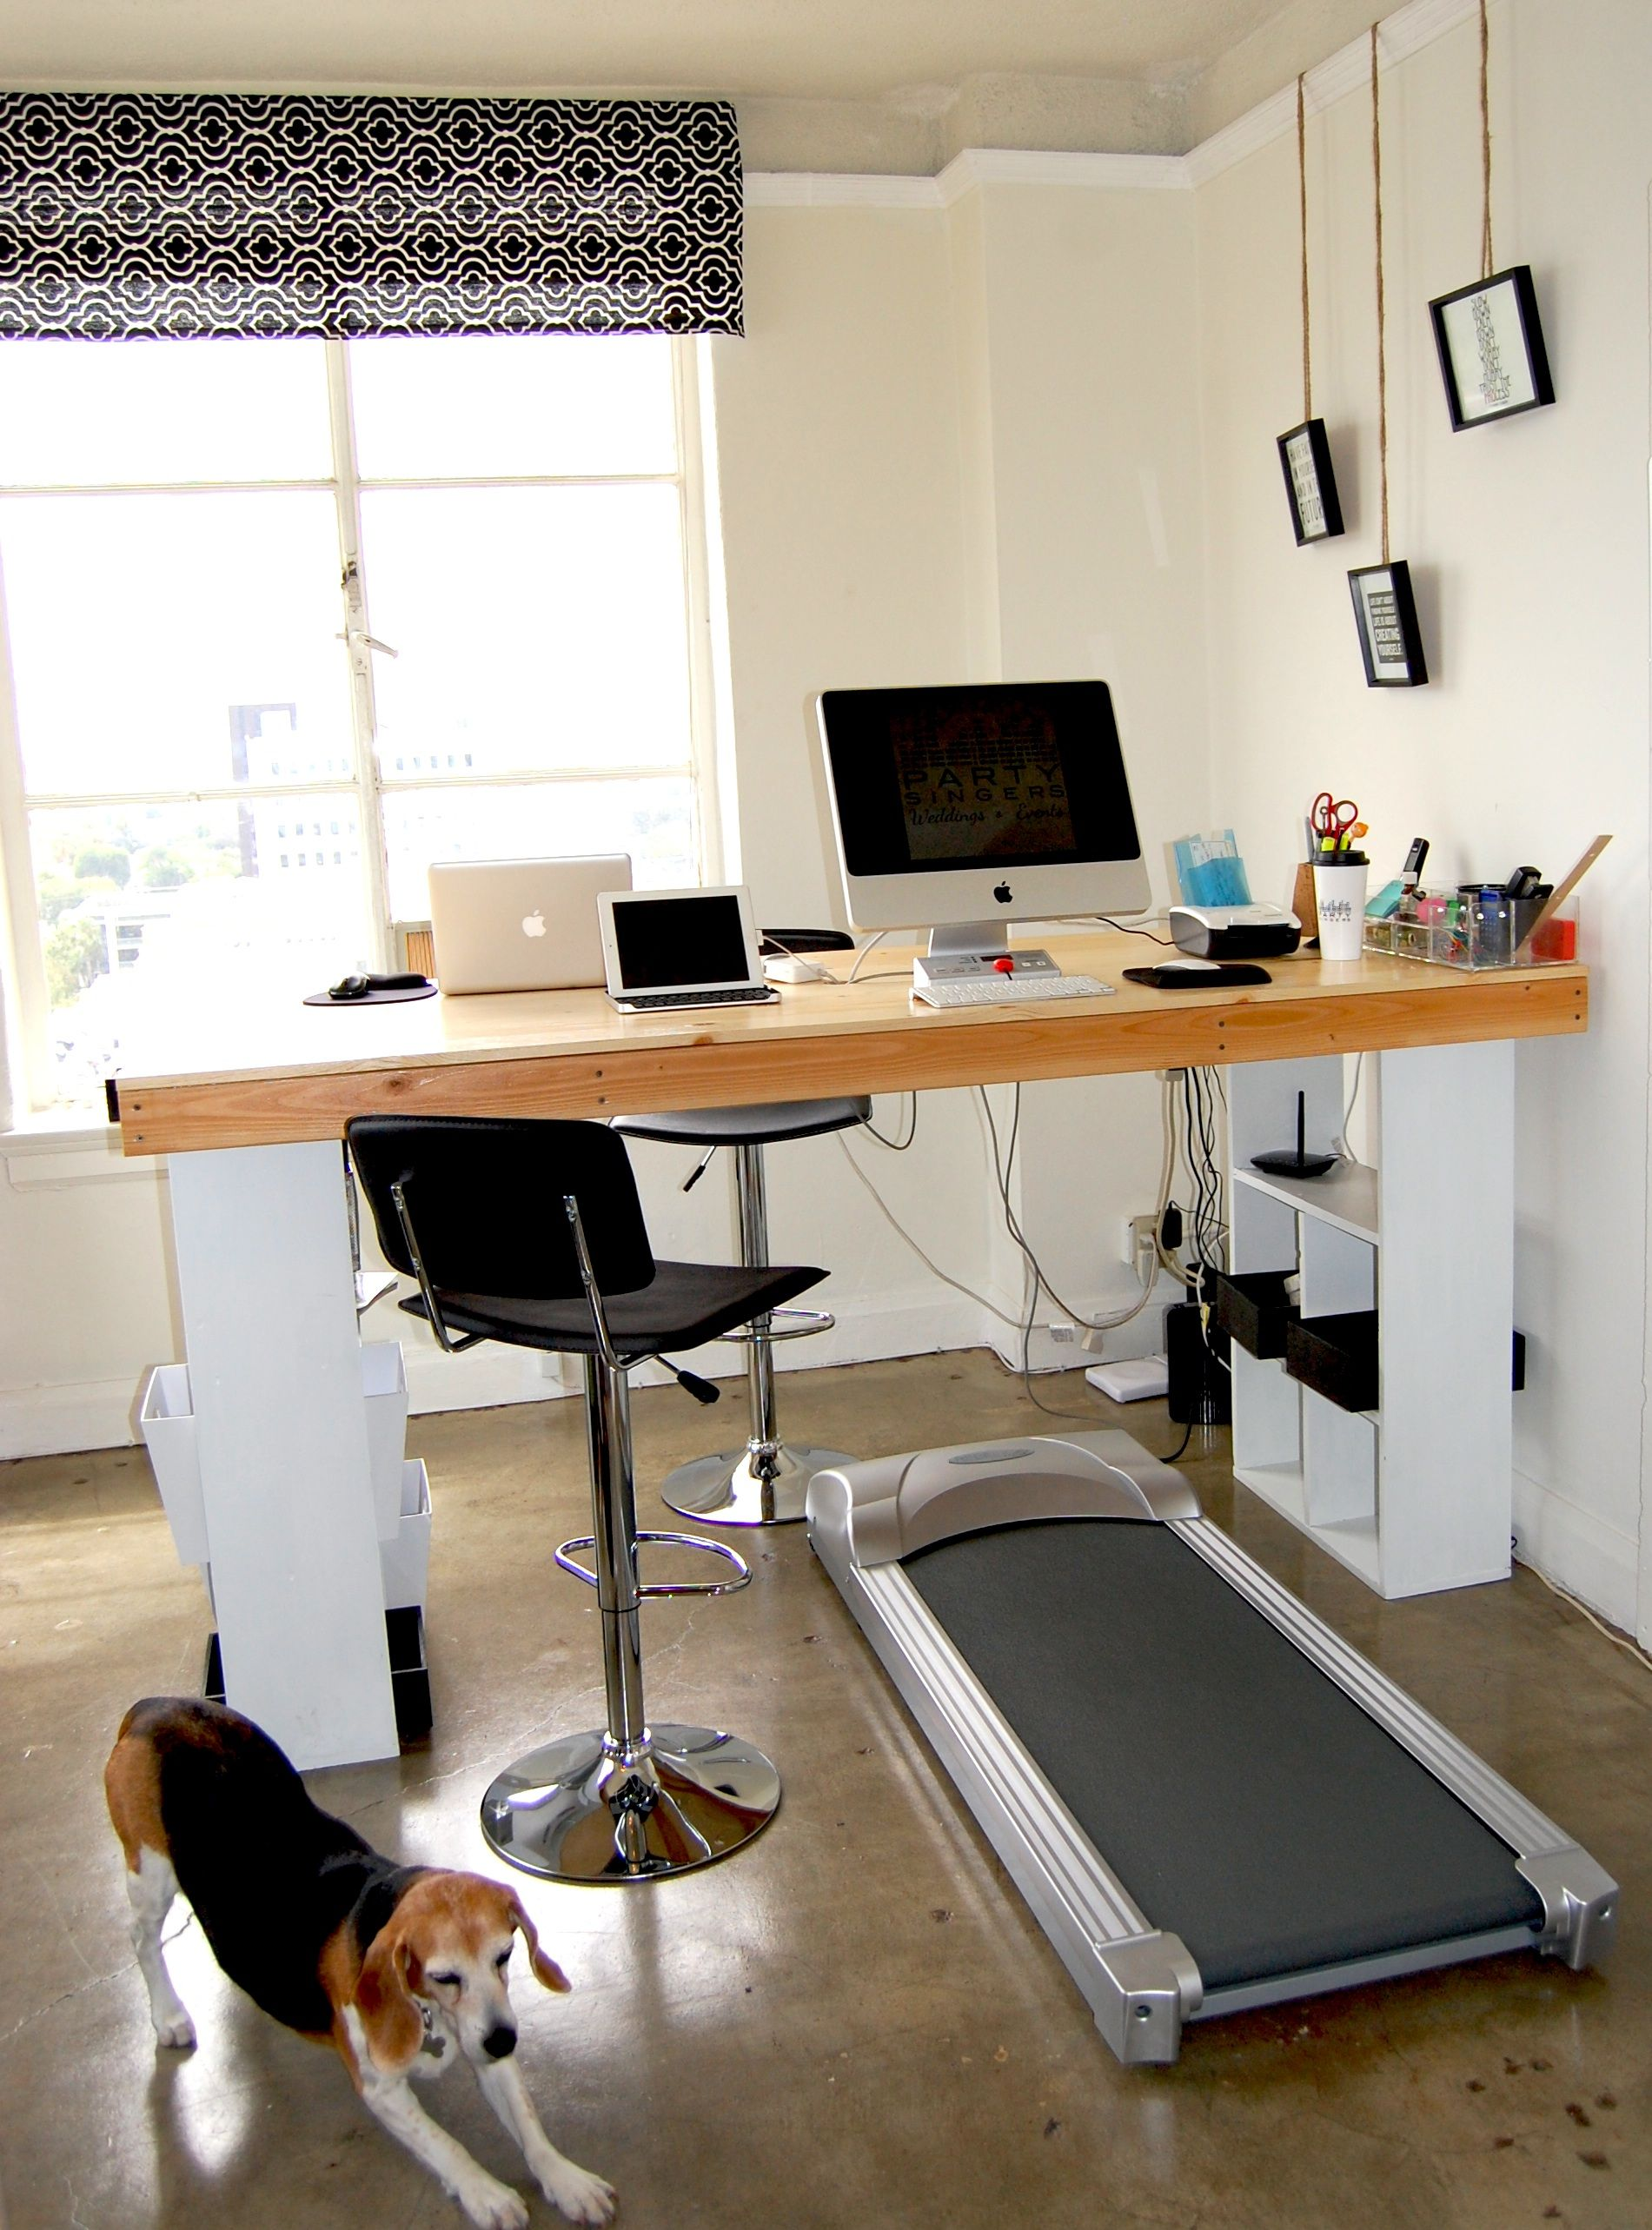 How to Build a Standing / Treadmill Desk - wouldn't this be amazing? Diy ...